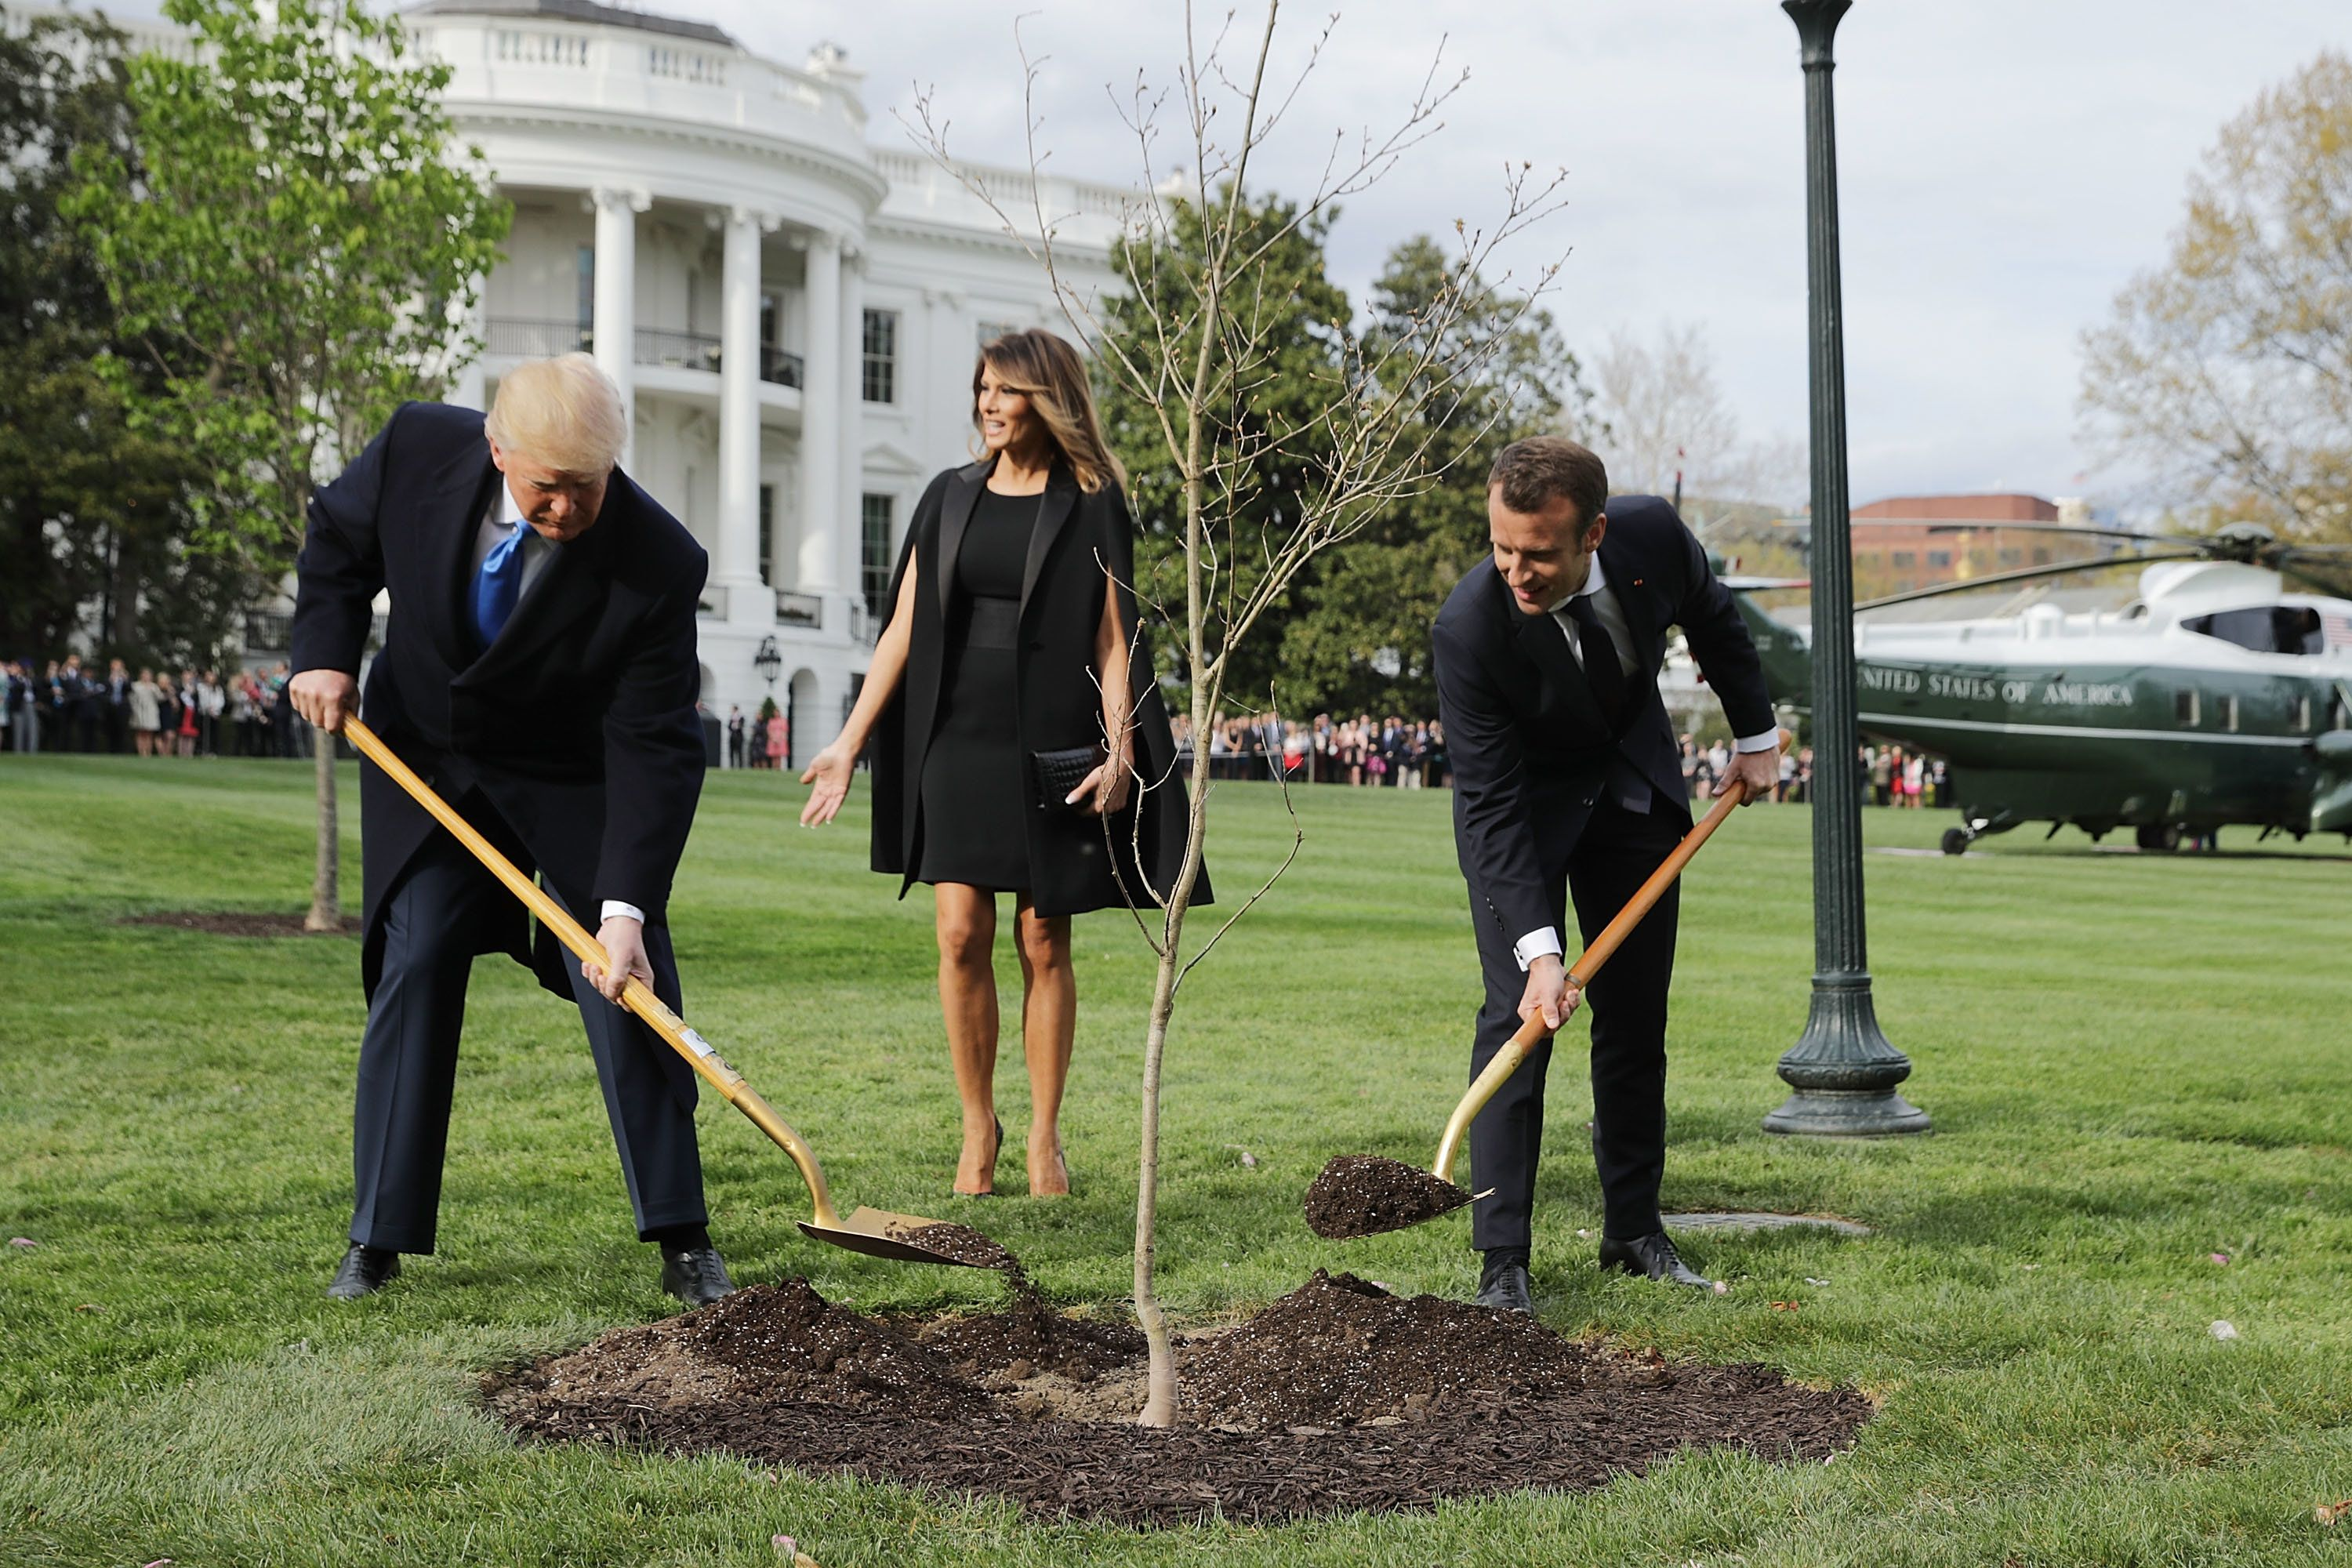 WASHINGTON, DC - APRIL 23:  (L-R) U.S President Donald Trump, U.S. first lady Melania Trump and French President Emmanuel Macron participate in a tree-planting ceremony on the South Lawn of the White House April 23, 2018 in Washington, DC. The European Sessile Oak is a gift from the Macrons and comes from Belleau Woods, where more than 9,000 American marines died during battle in June 1918 during the First World War. According to the first lady's office 'The forest is a memorial site and important symbol of the sacrifice the United States made to ensure peace and stability in Europe.' (Photo by Chip Somodevilla/Getty Images)